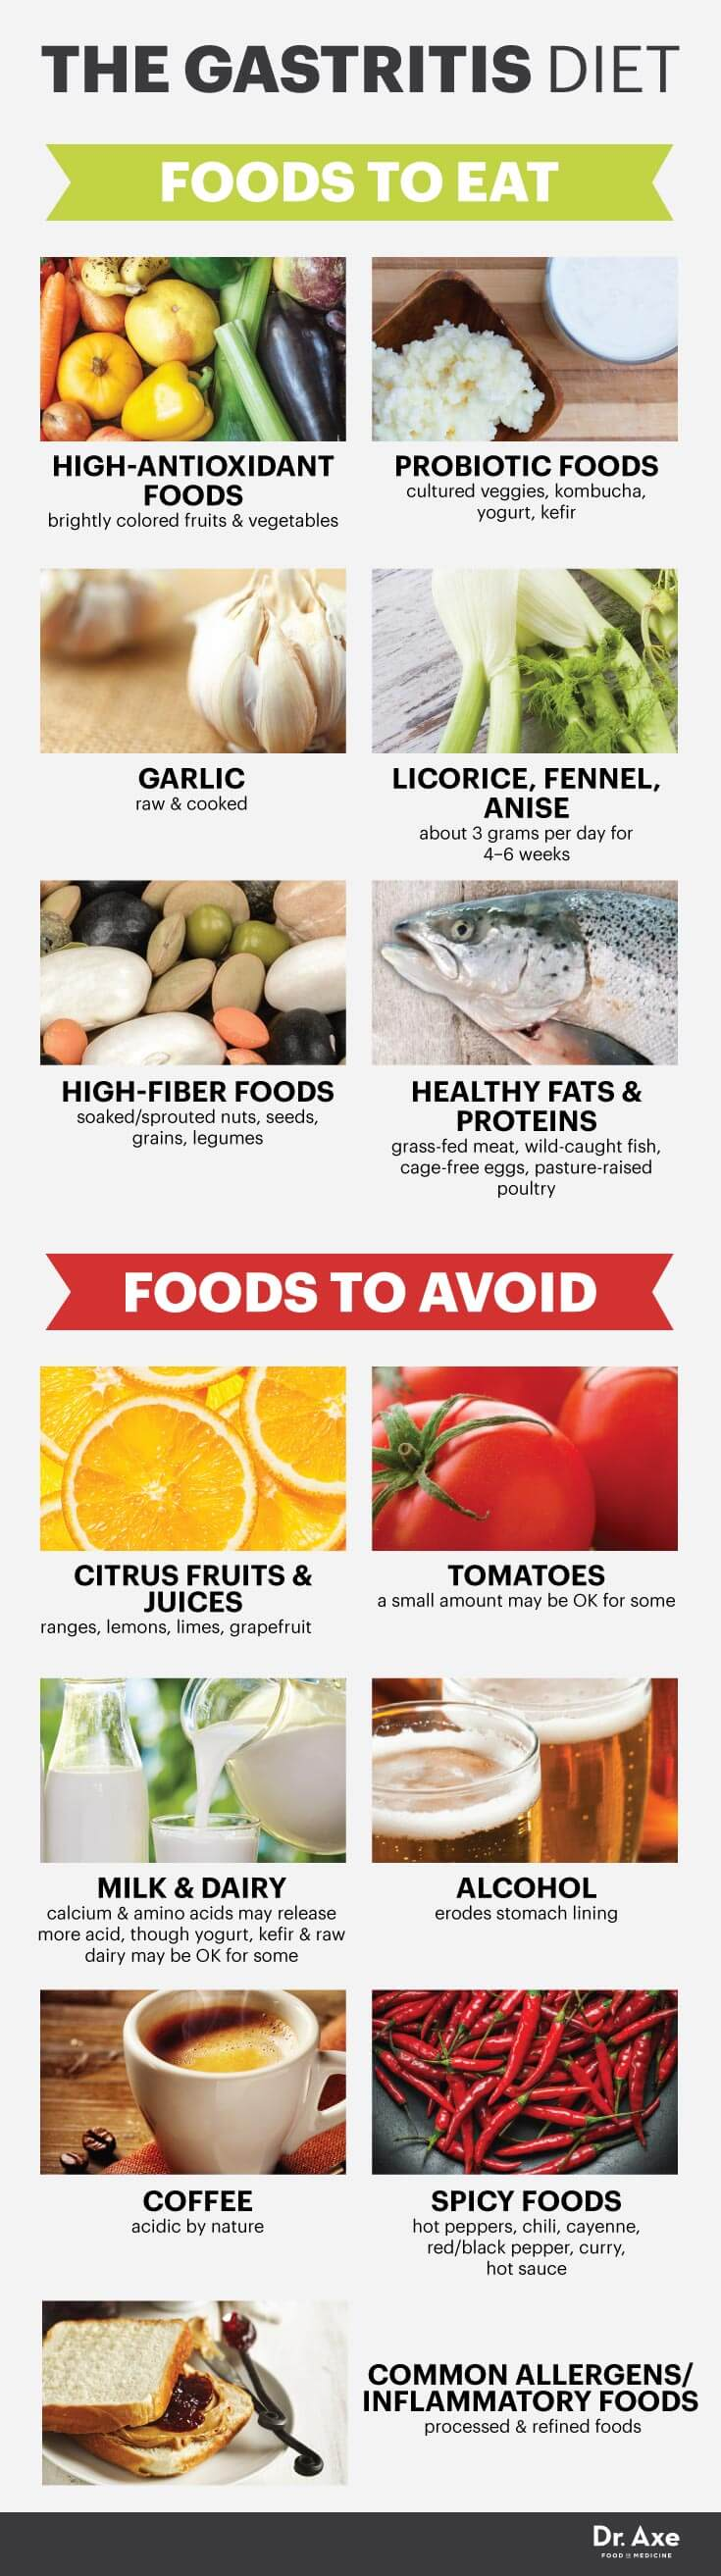 gastritis diet food list